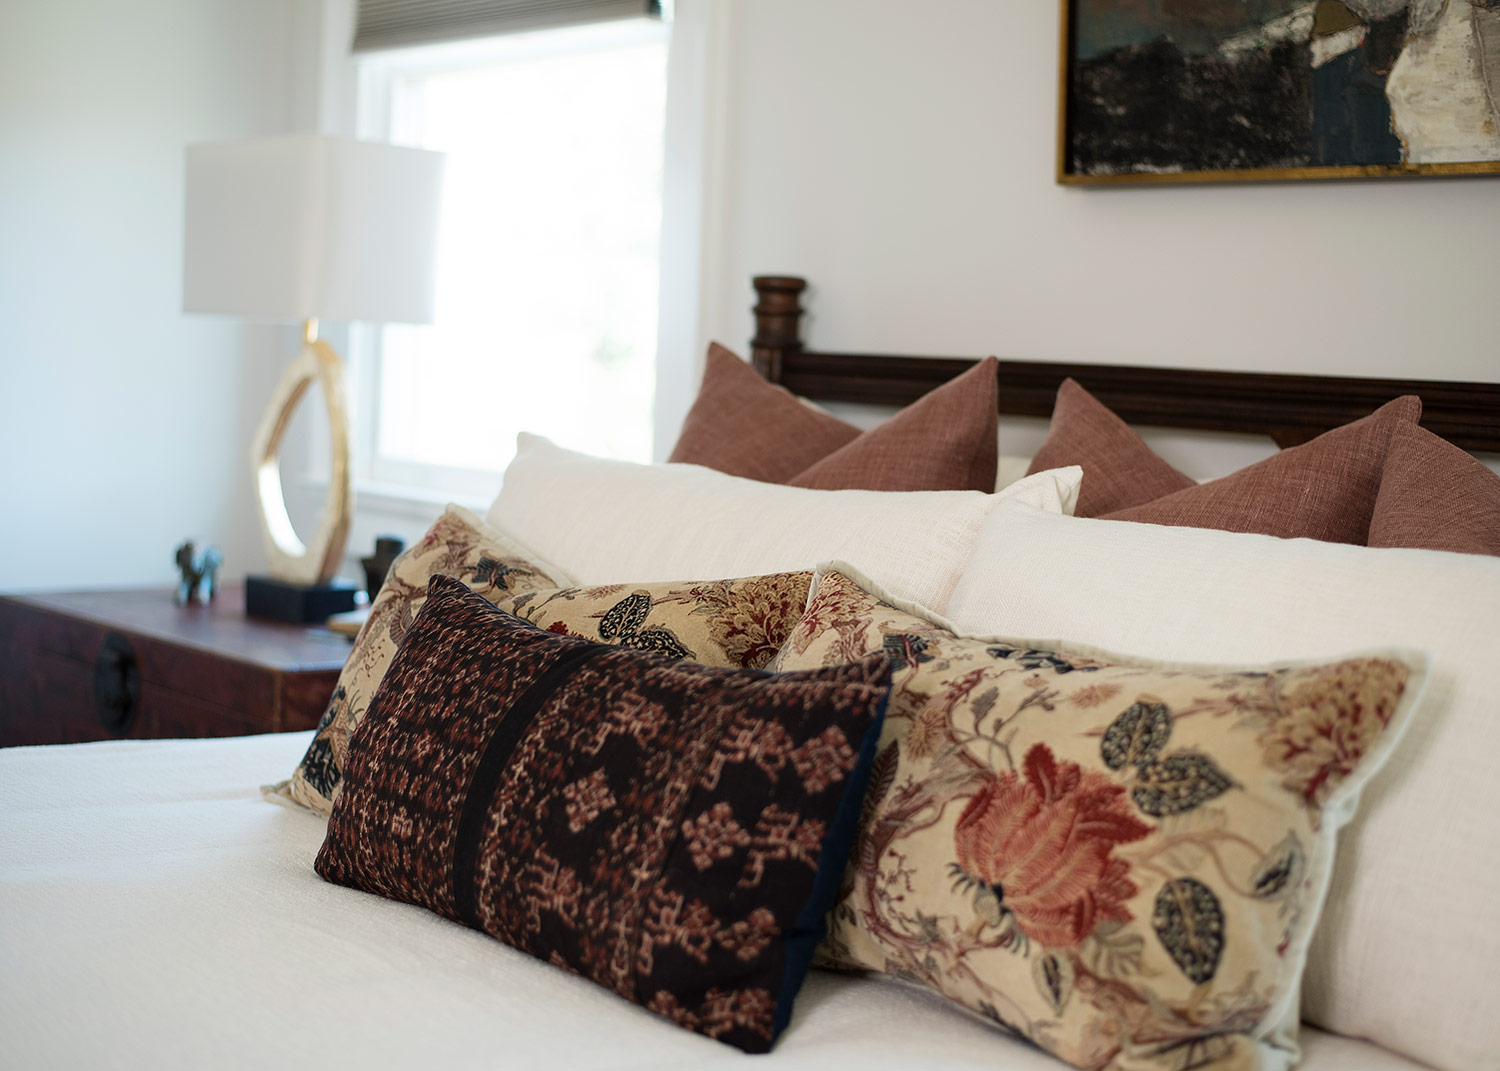 Floral throw pillows on bed in master bedroom